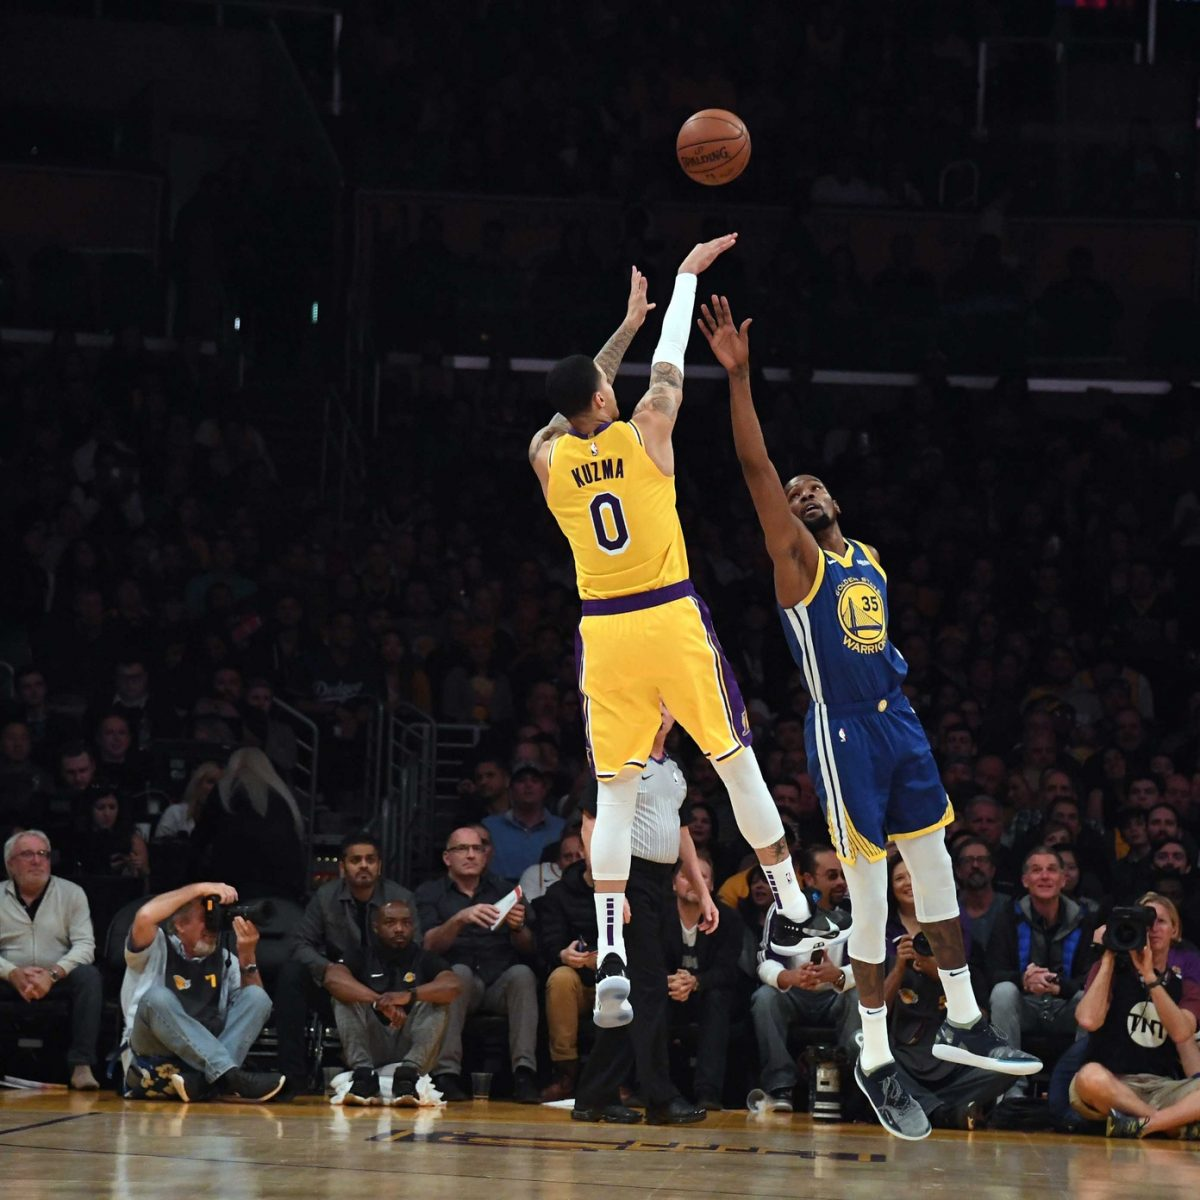 Nba Picks Nuggets And Lakers Game 7 Odds And Betting: Philadelphia 76ers Vs. Los Angeles Lakers Prediction